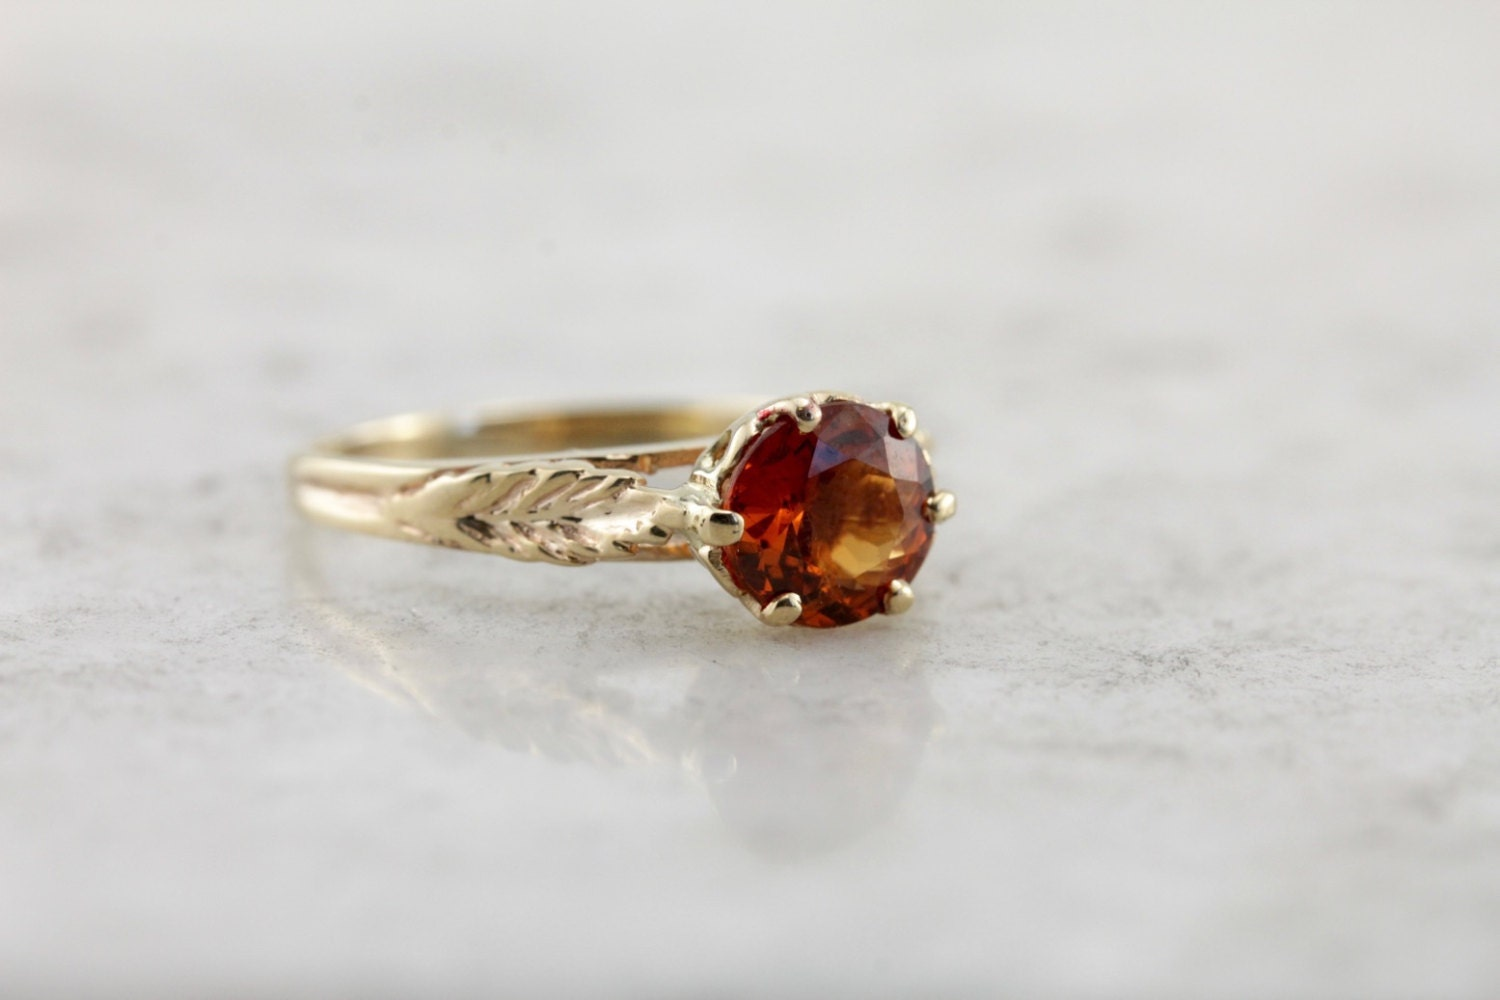 Crisp Orange Hessonite Garnet Solitaire Vintage Leaf Mounting